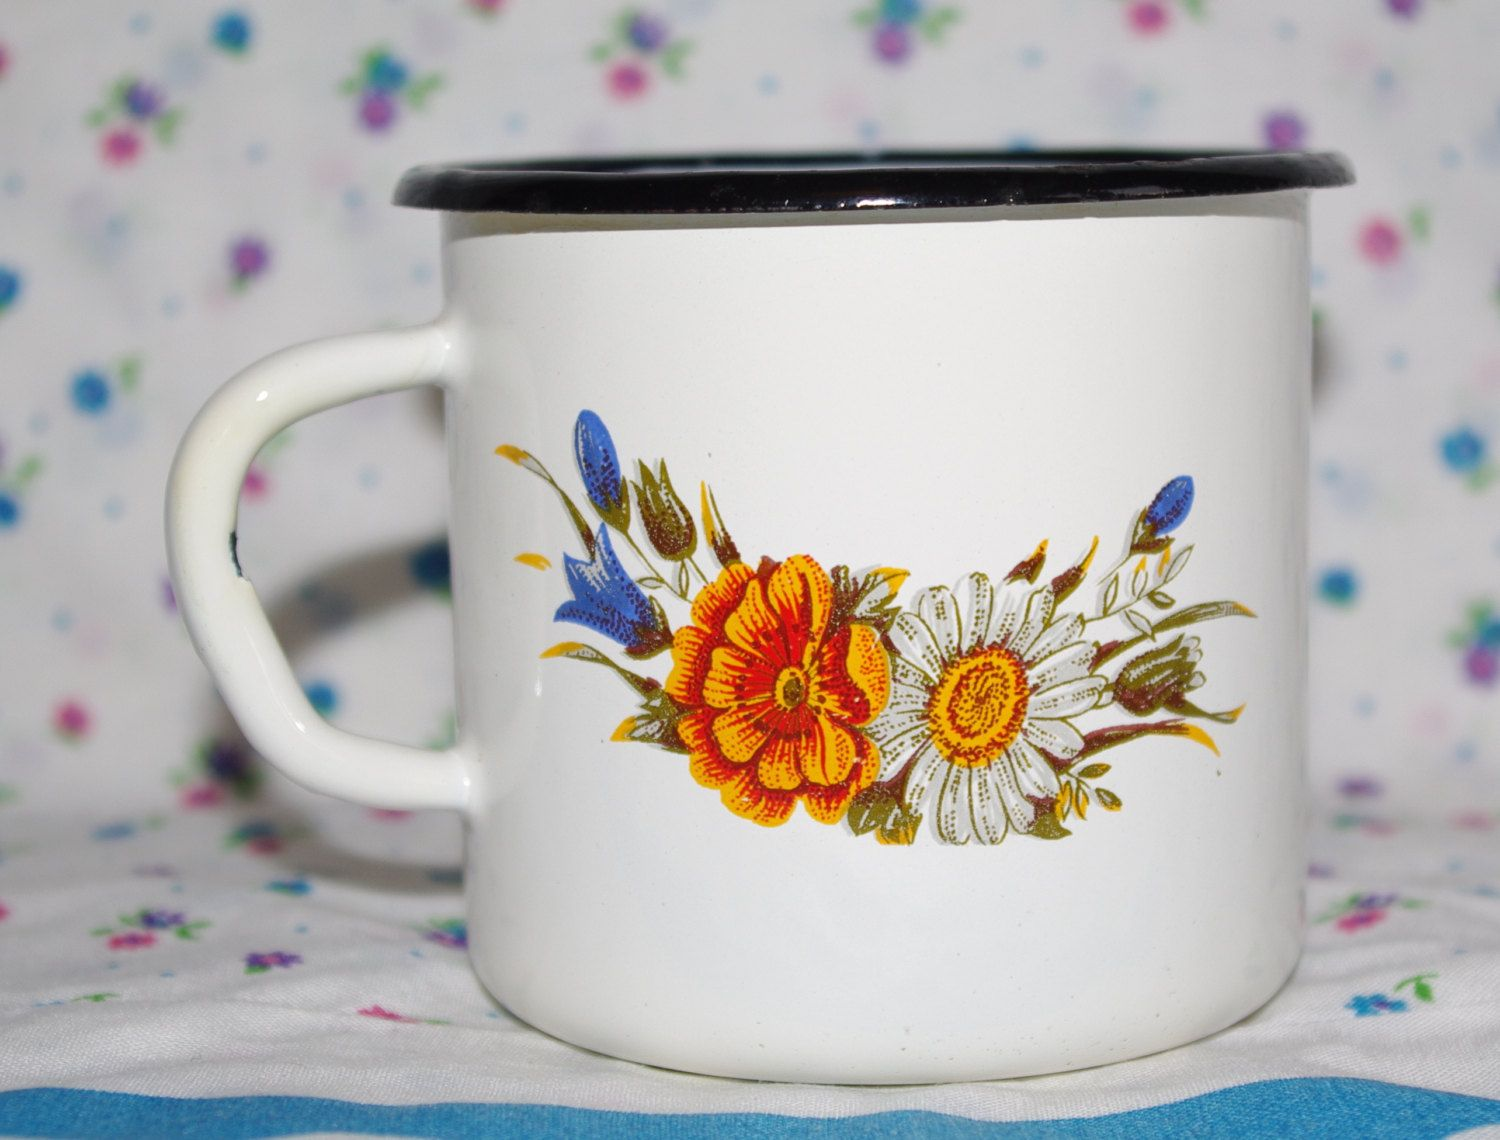 Enamel Cup Cute Soviet Vintage Enamel Camping Tea Cup / Farmhouse Chipped cup / White tin cup with flower design, metal mug, Emalware USSR by VintagePolkaShop on Etsy